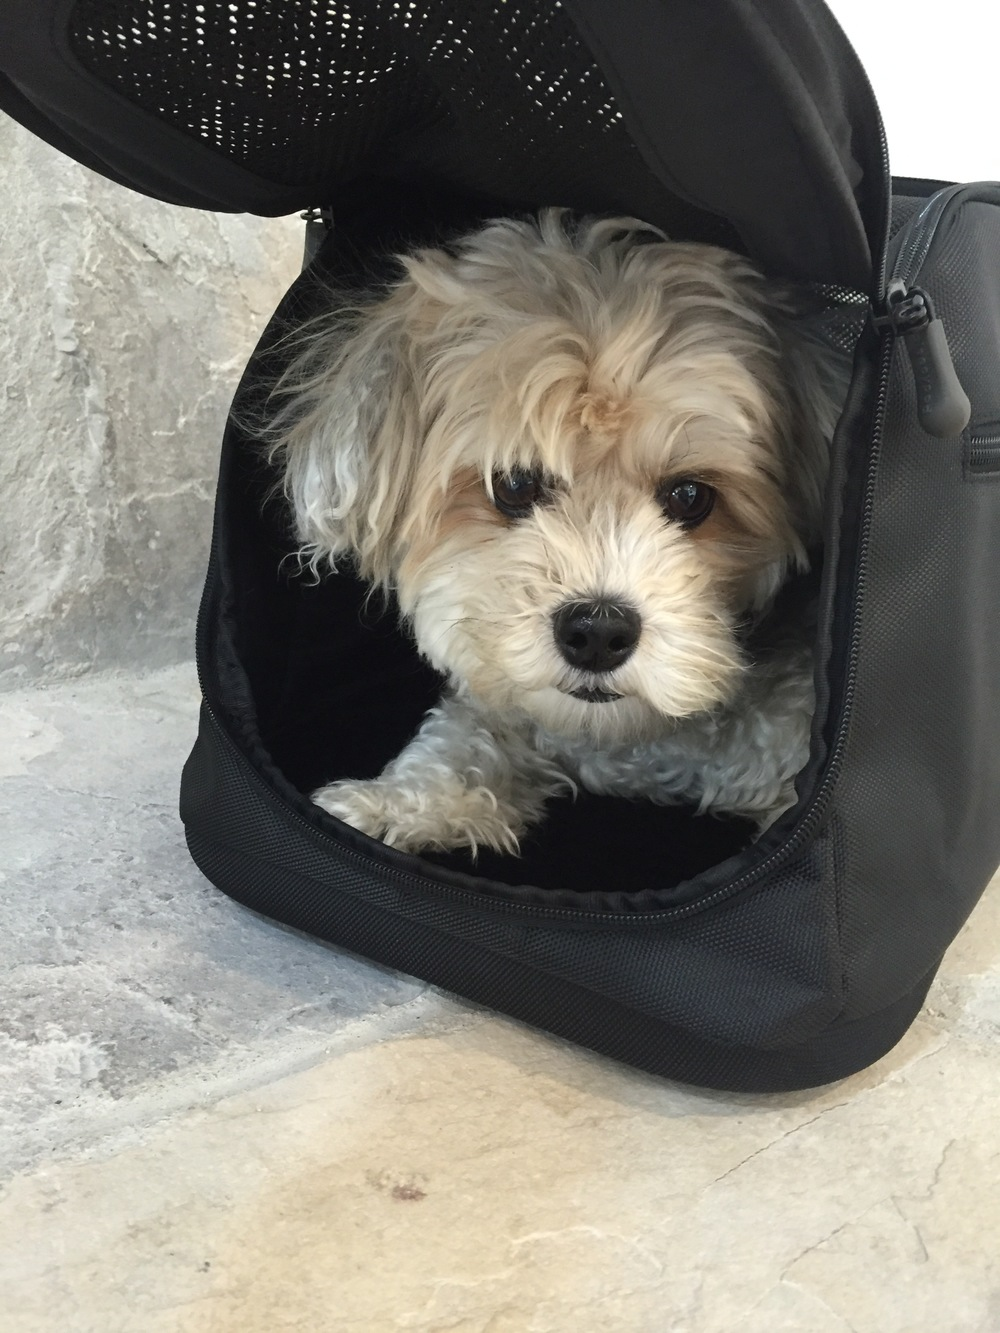 During the day, whether we're home or not, sometimes Mia will climb into her bag for a rest. She absolutely loves her Sleepypod...it's her safe space and her home within our home.